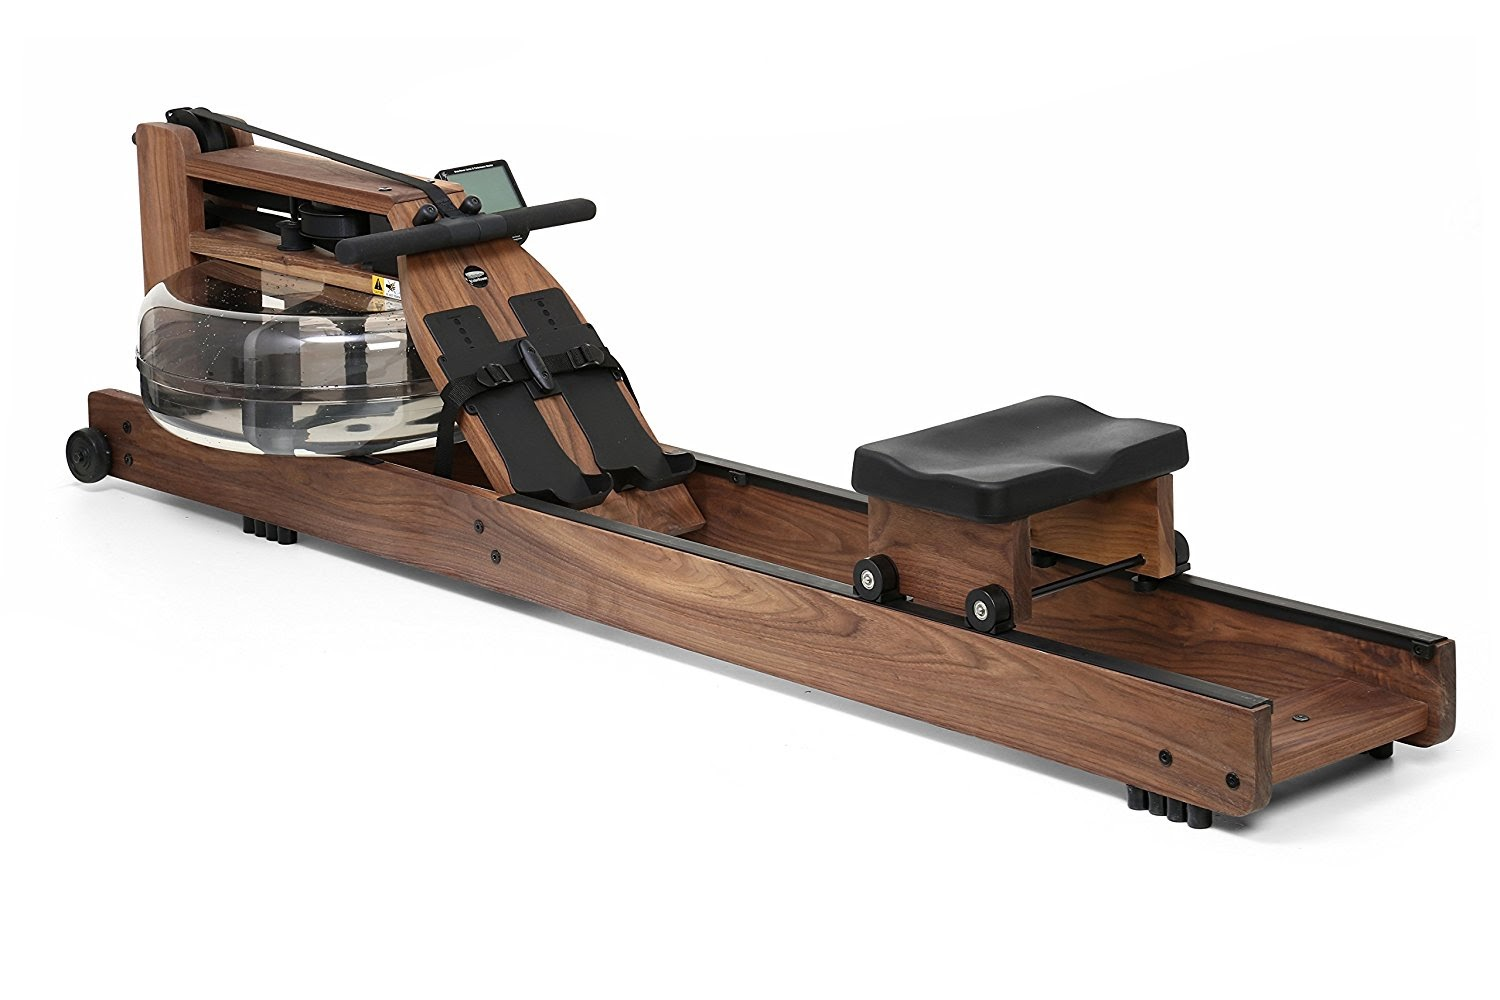 home gym zone waterrower classic rowing machine in black walnut with s4 monitor review. Black Bedroom Furniture Sets. Home Design Ideas